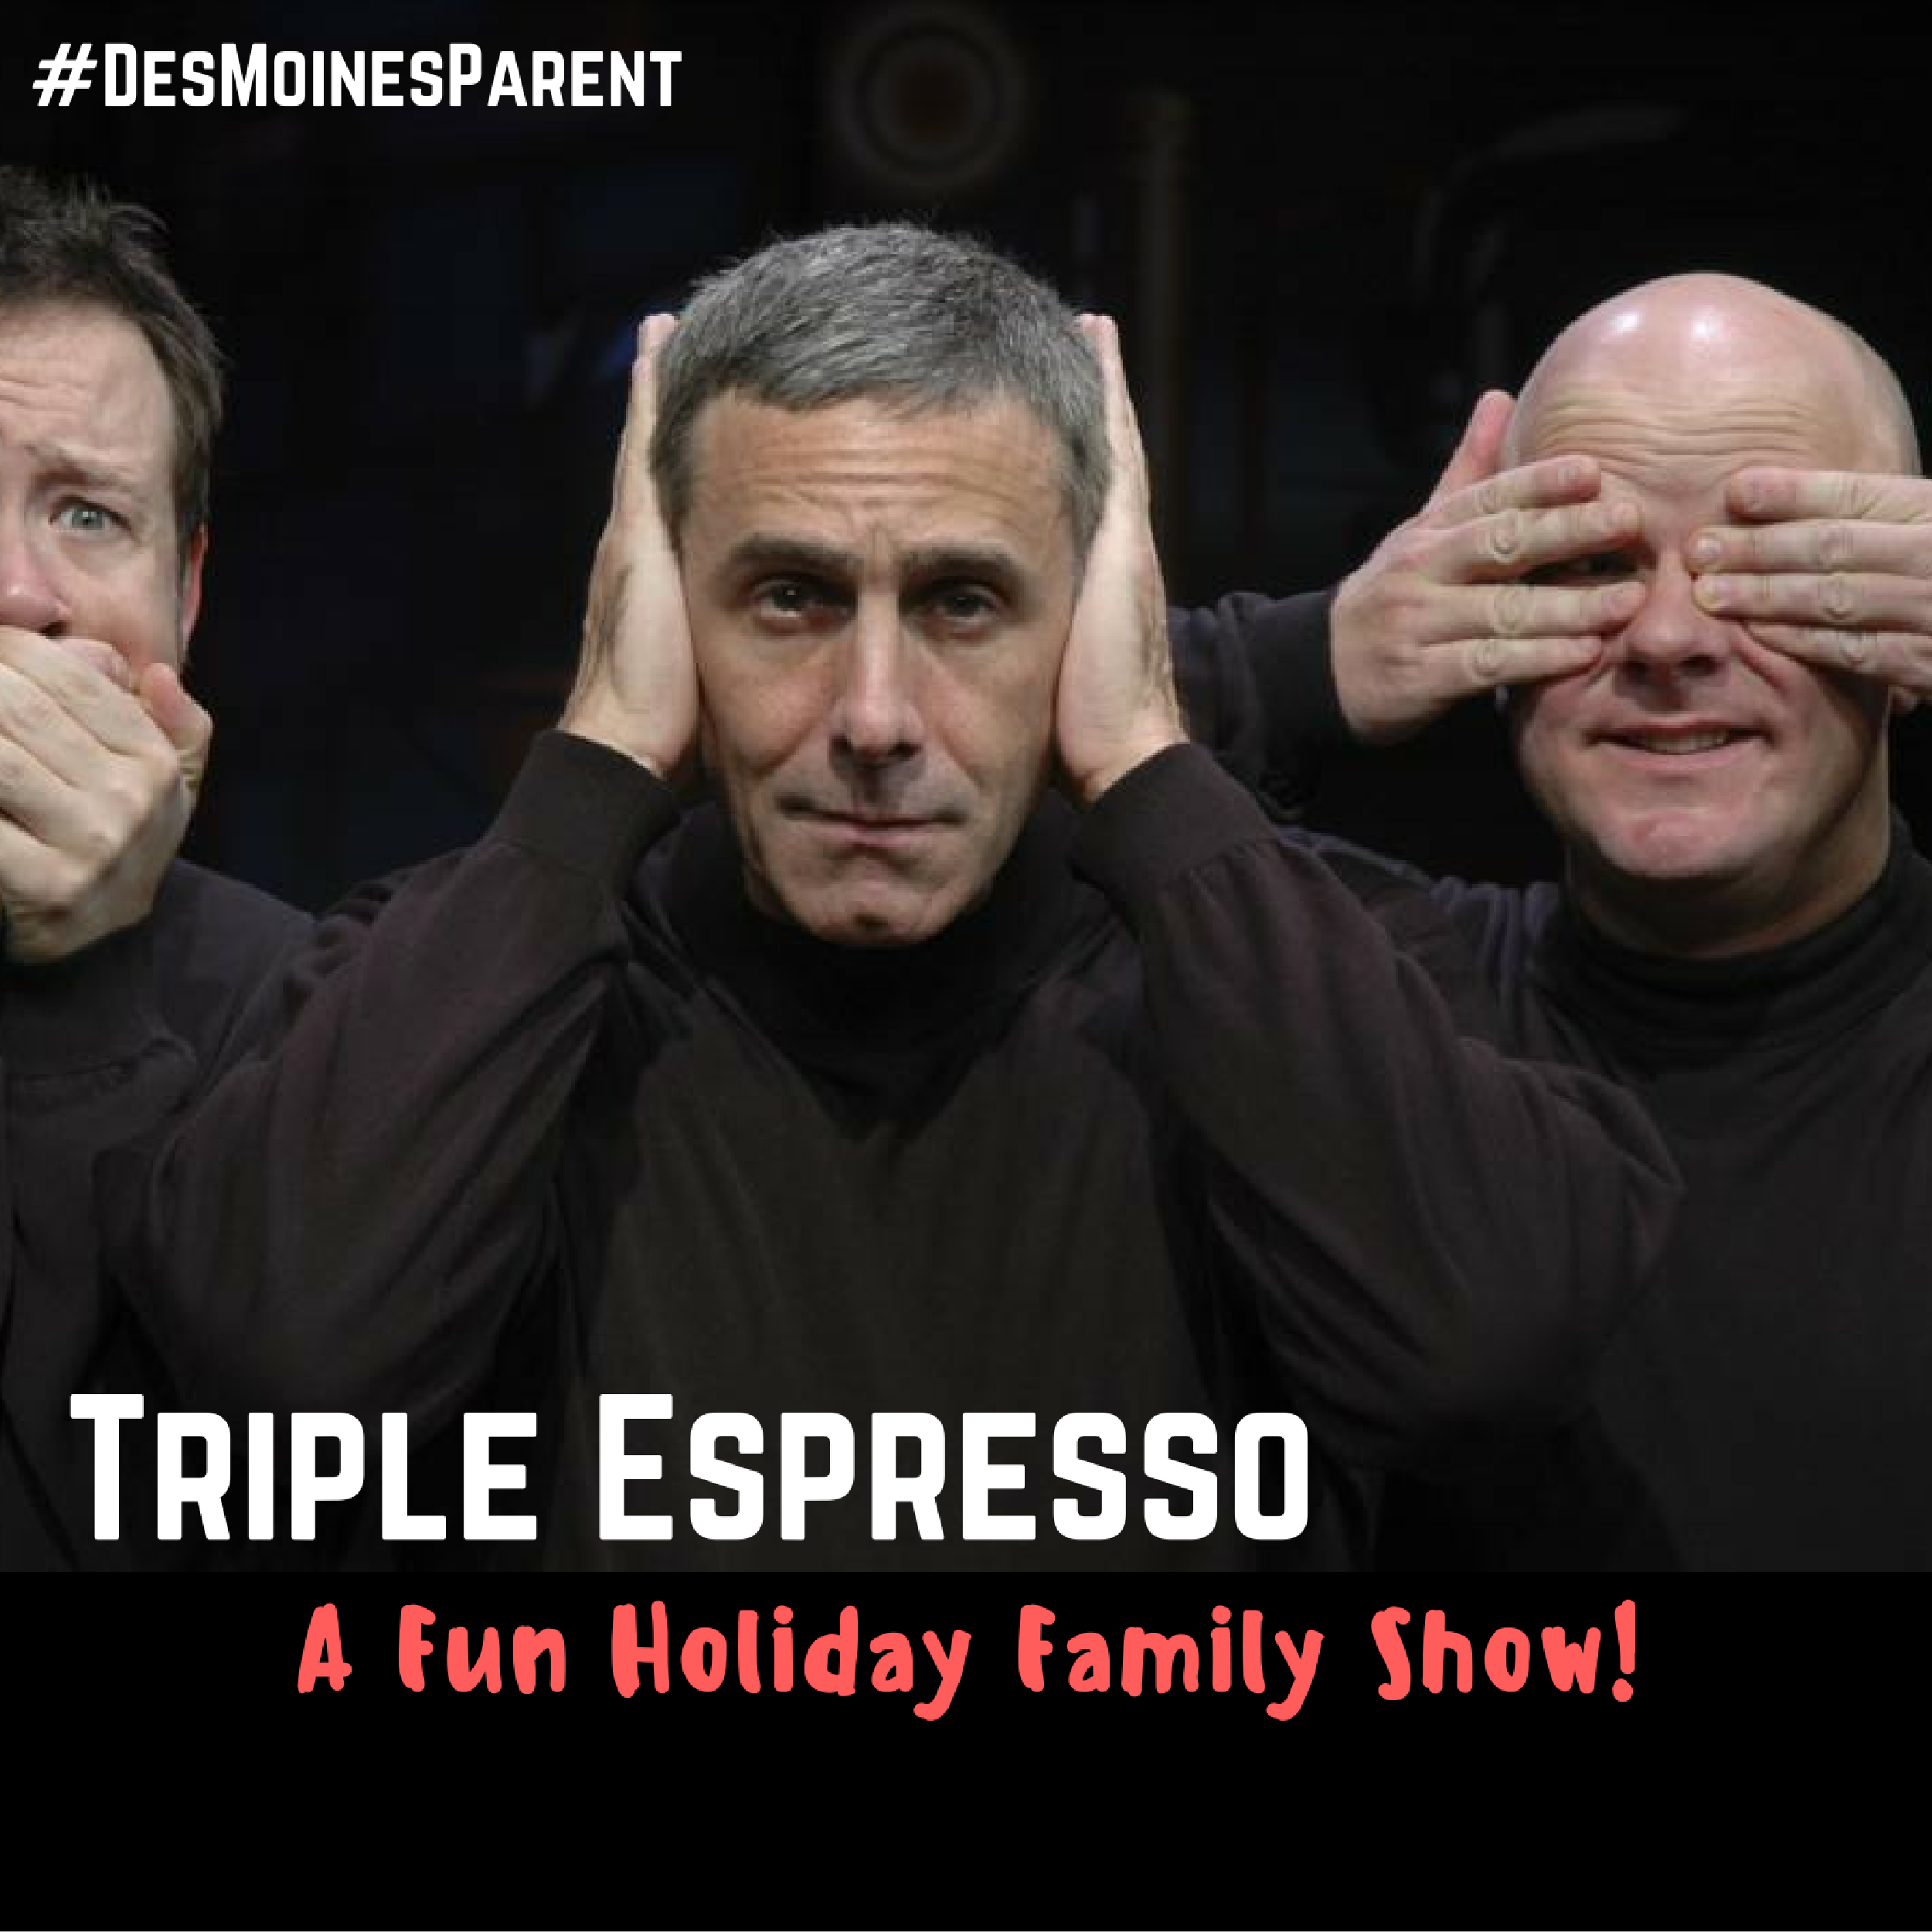 Triple Espresso Fun Holiday Family Show